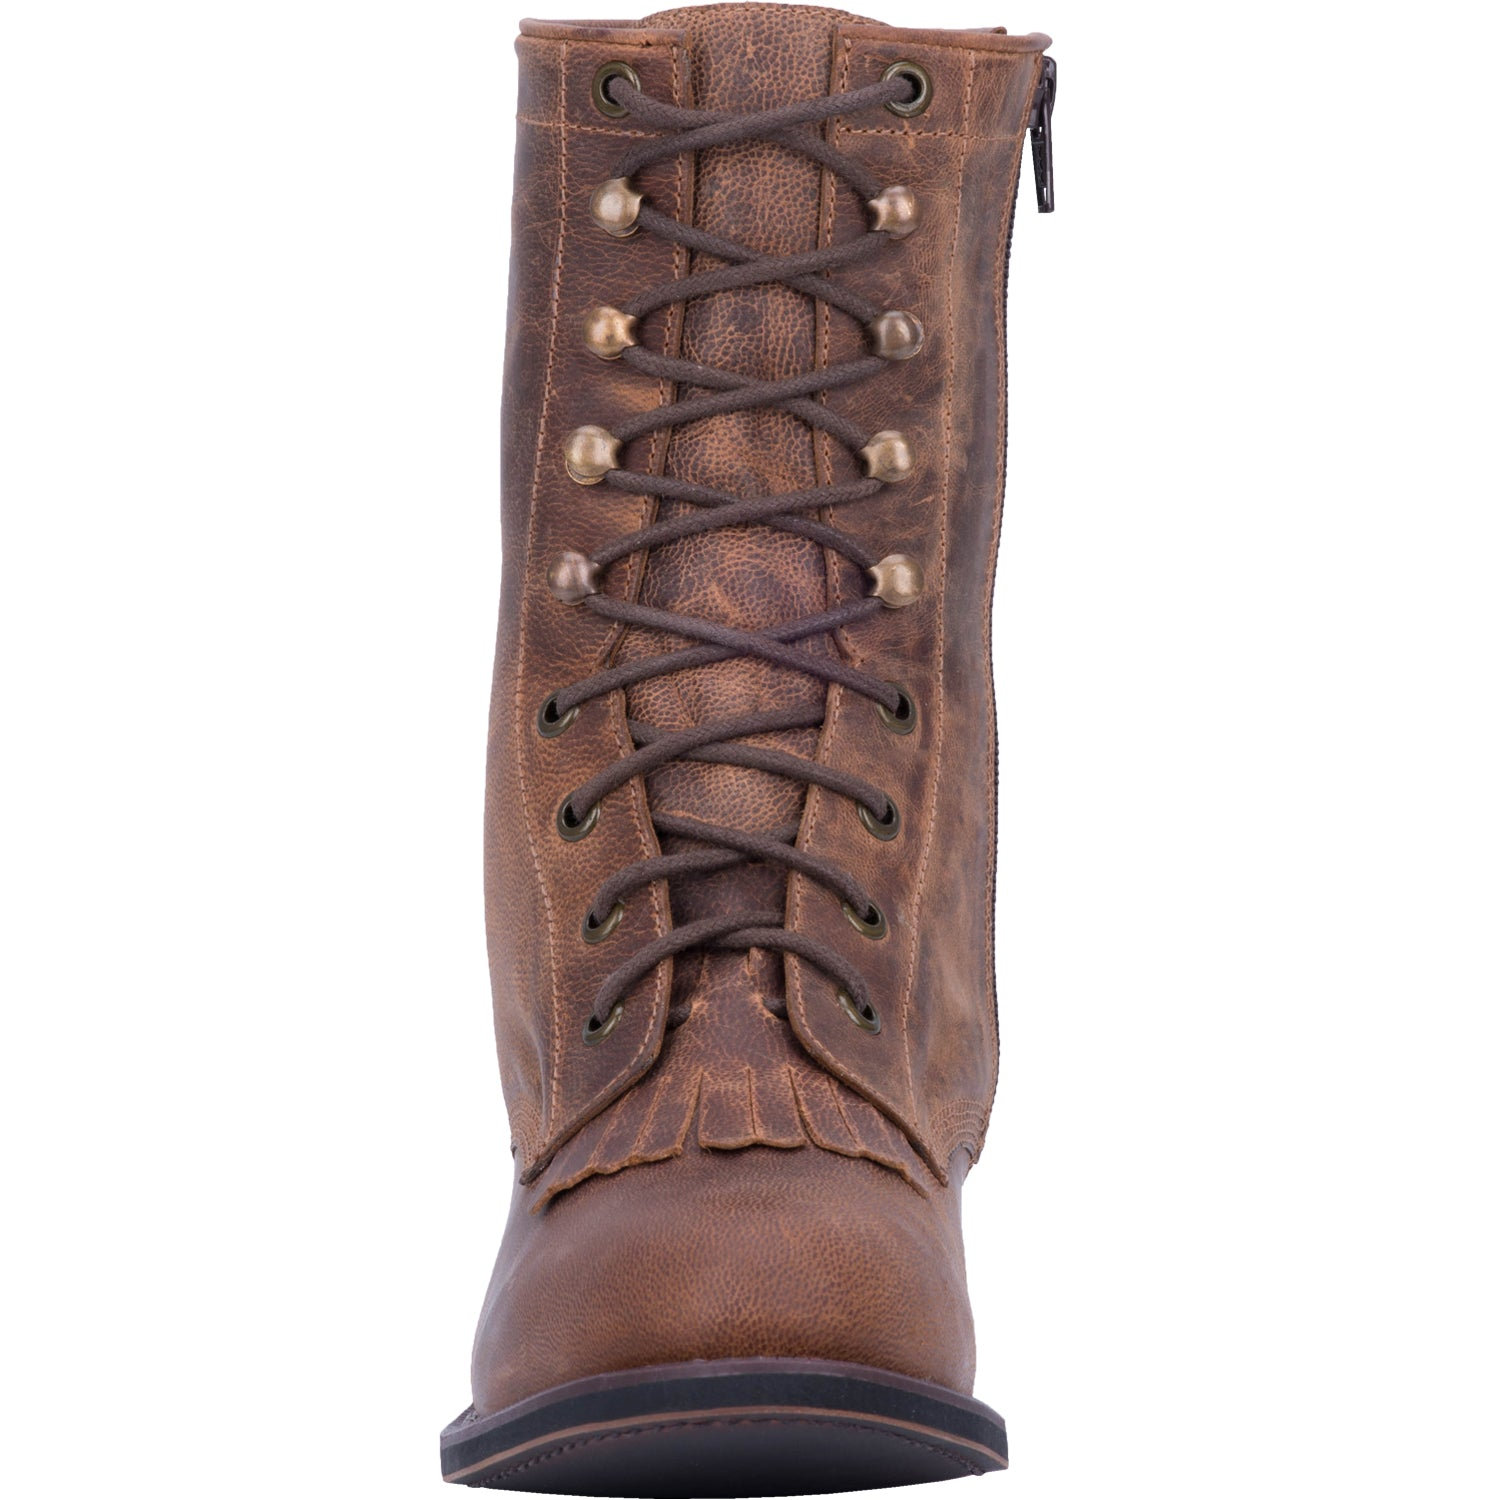 SARA ROSE LEATHER BOOT 4197170839594